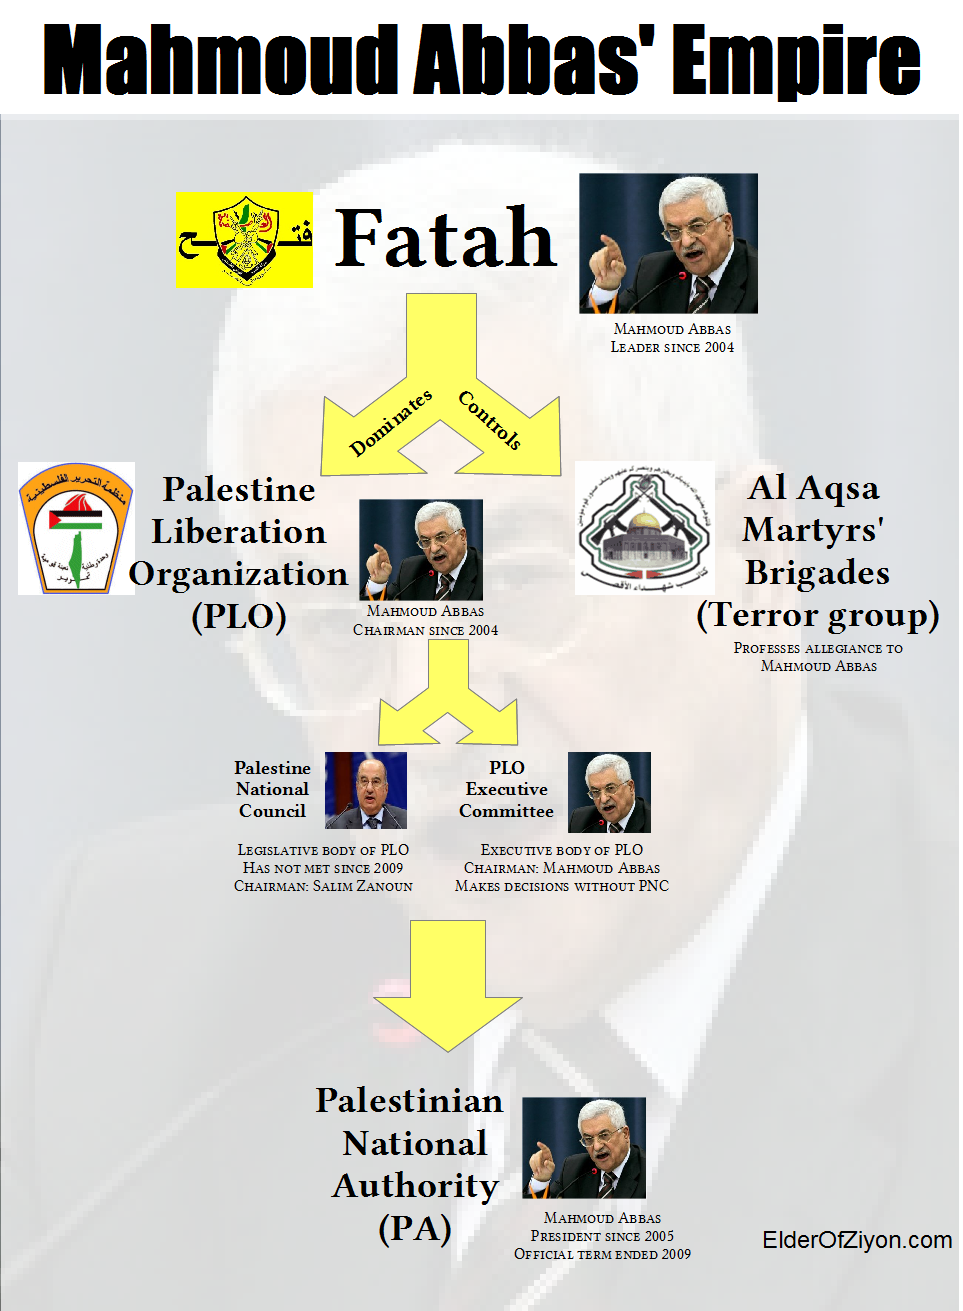 an analysis of the relationship between israel and the palestine liberation organization Long overdue: alternatives to the paris protocol the palestine liberation organization and the parameters for the economic relationship between israel.